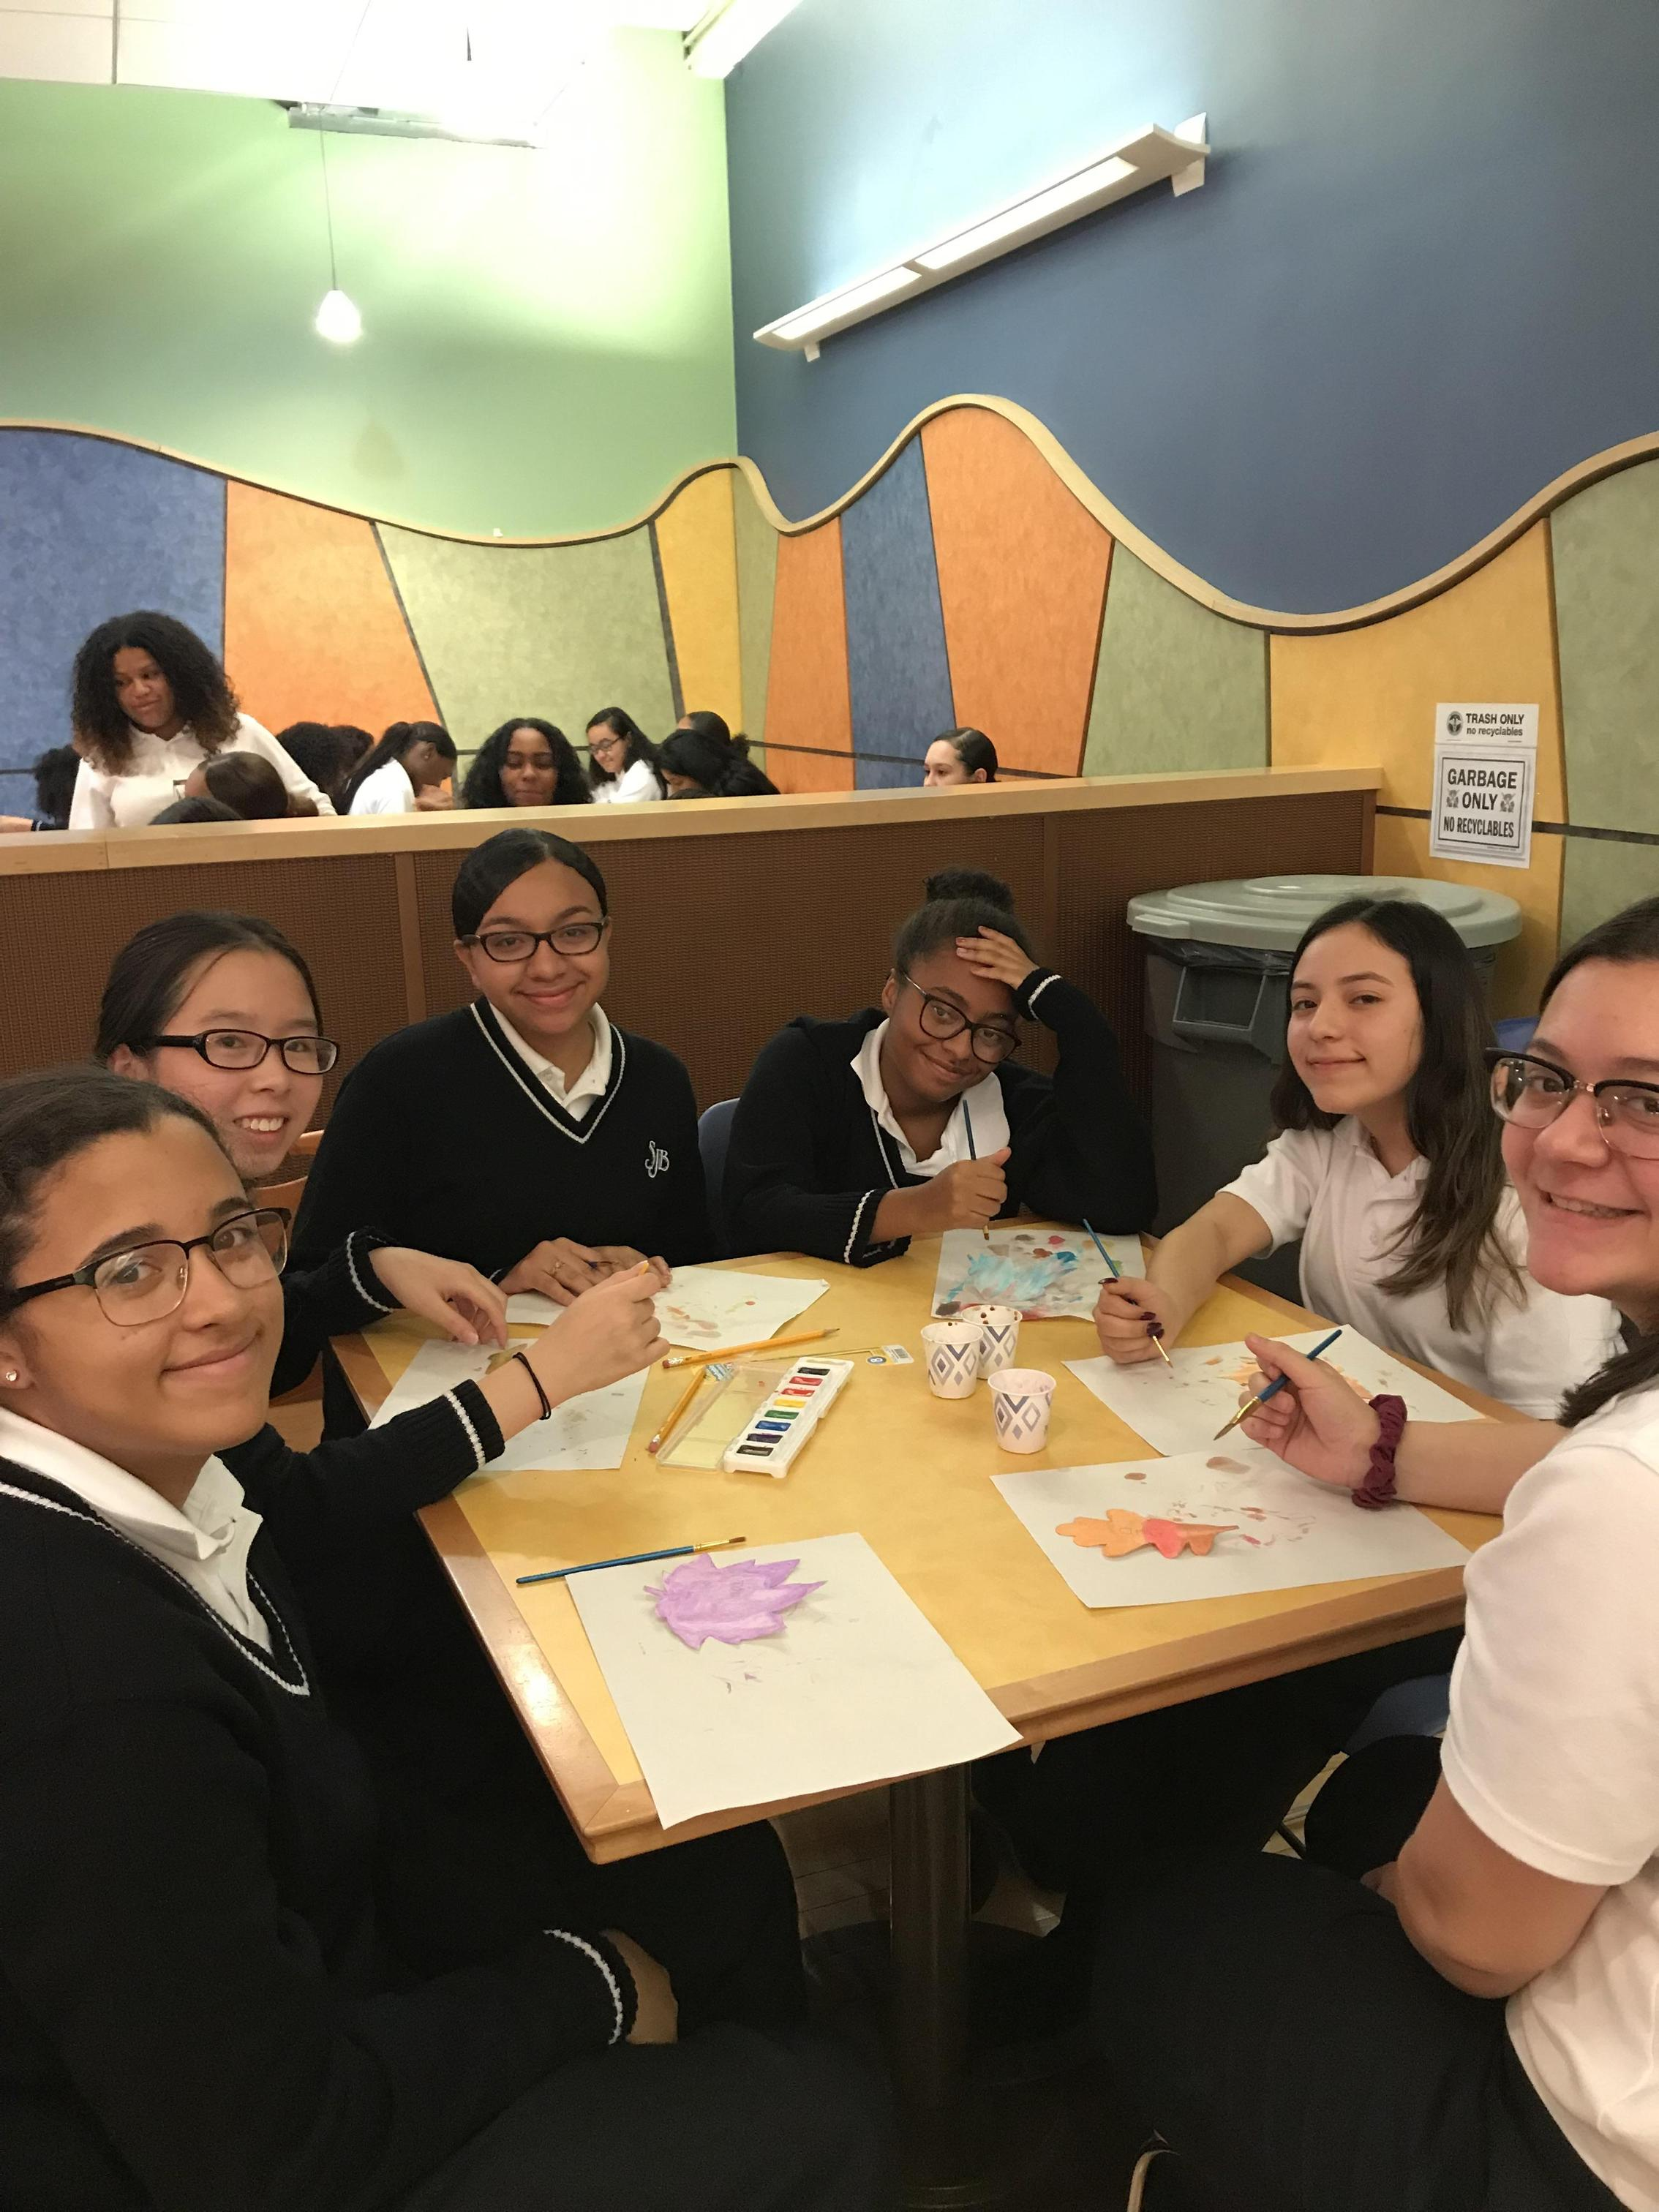 Six girls sit at table with art supplies